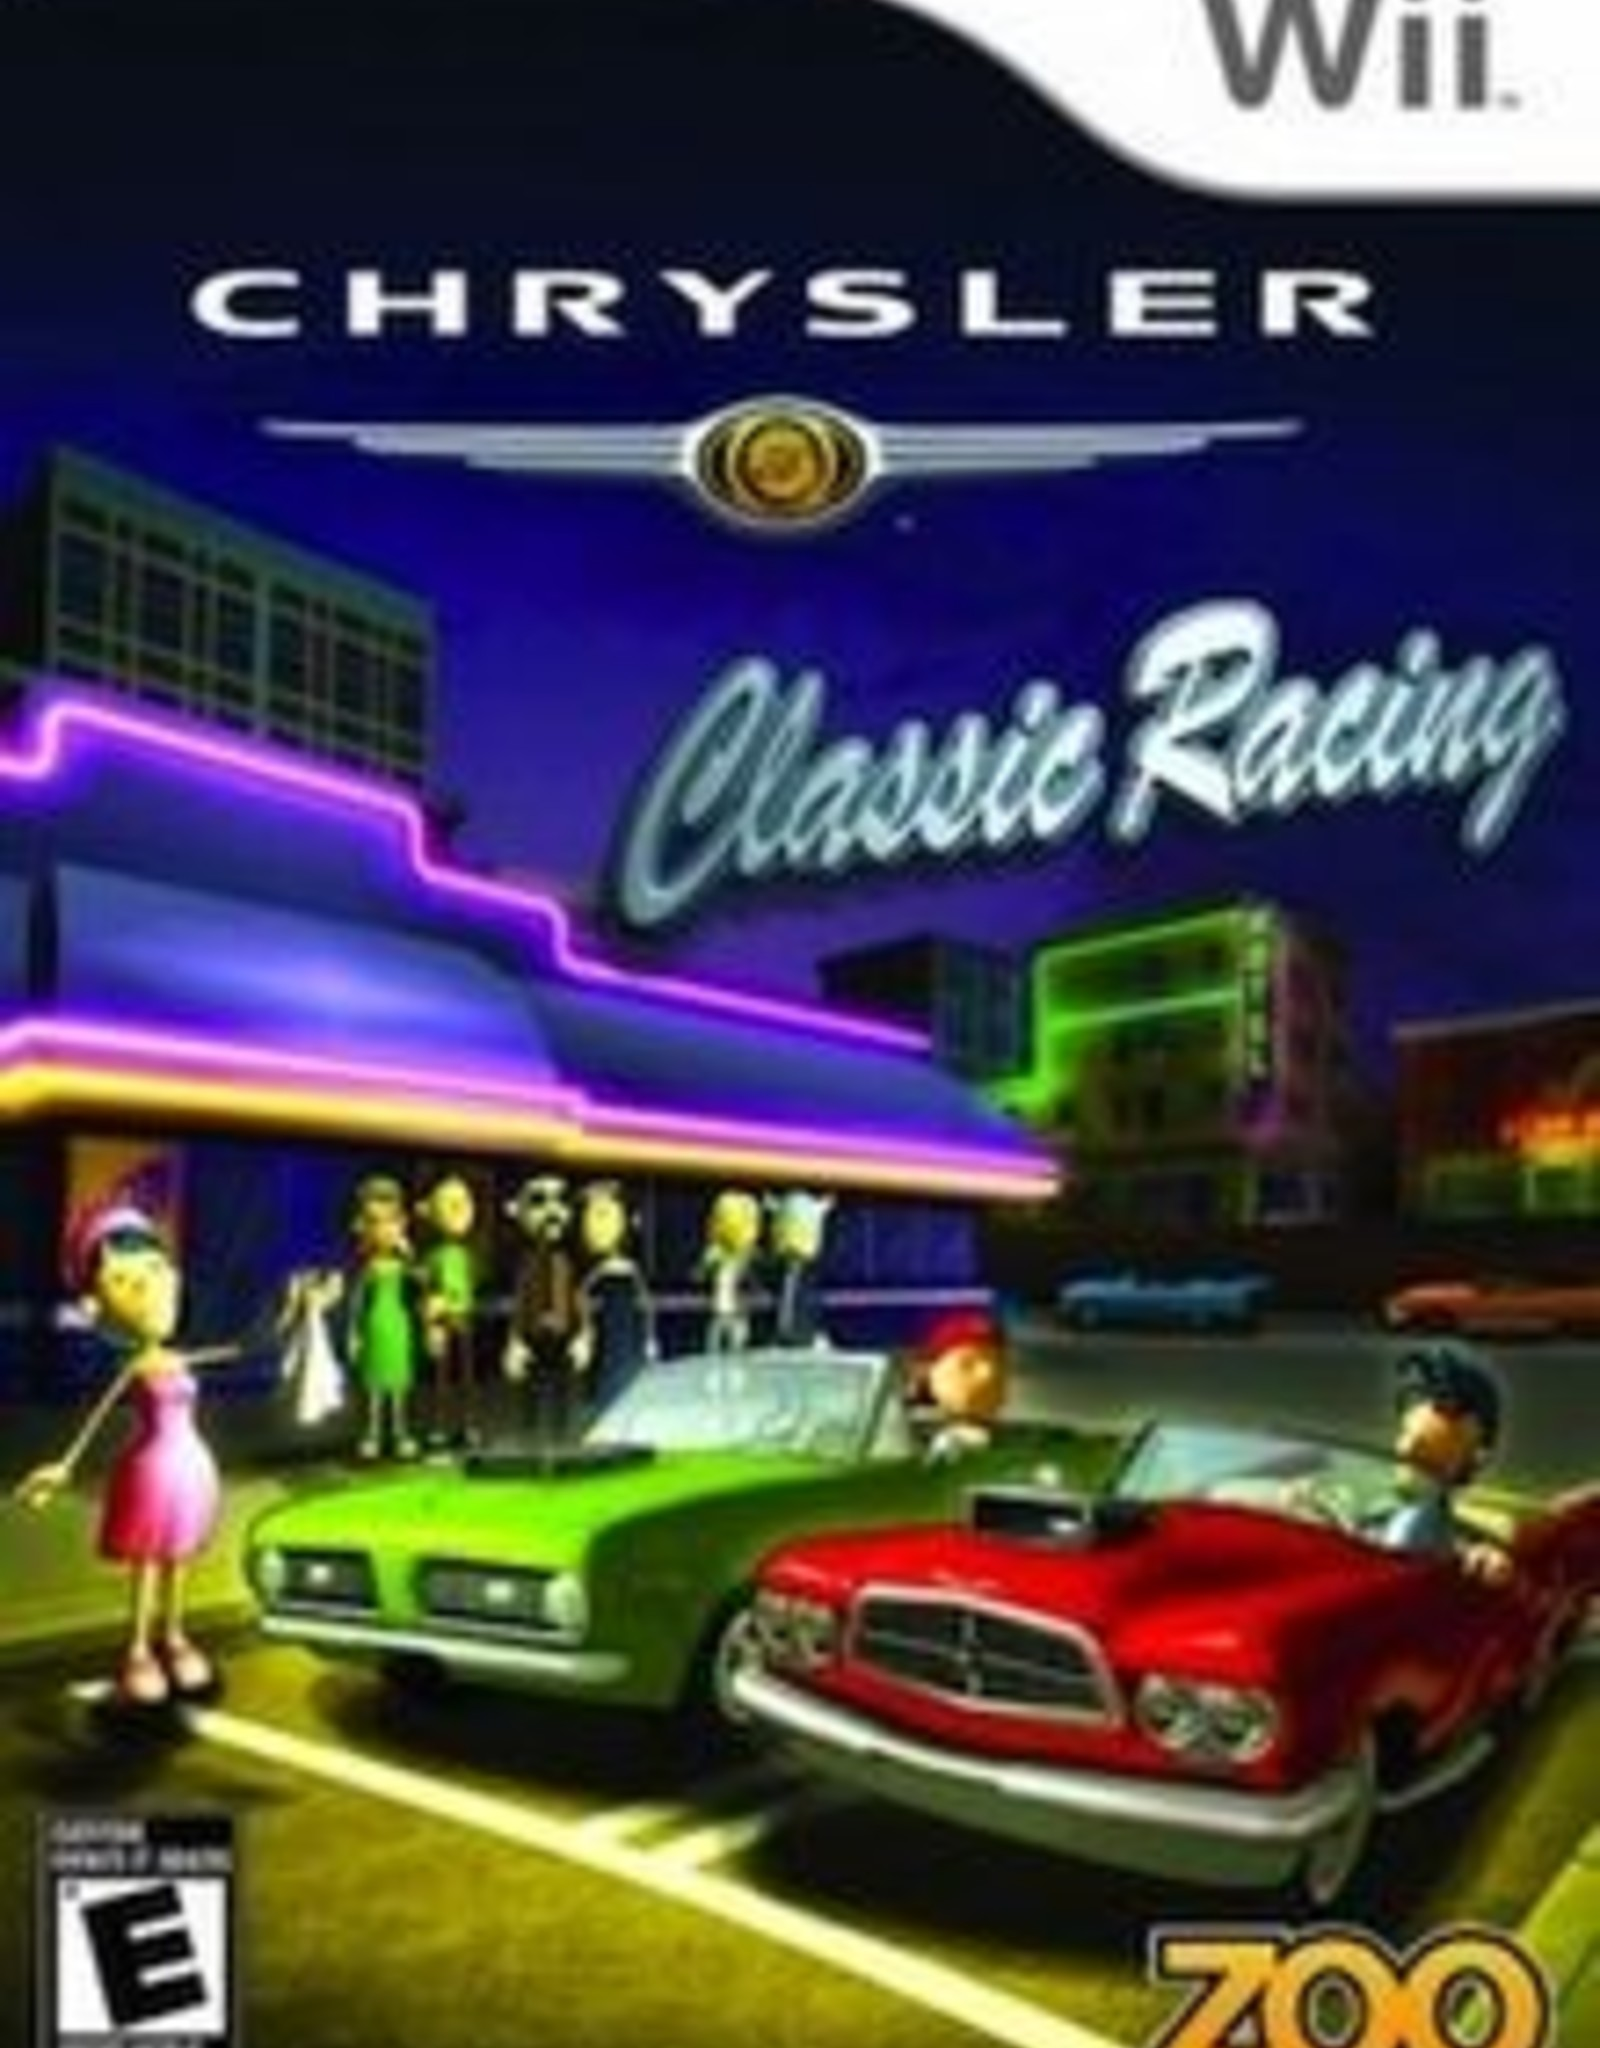 Chrysler Classic Racing - WII NEW